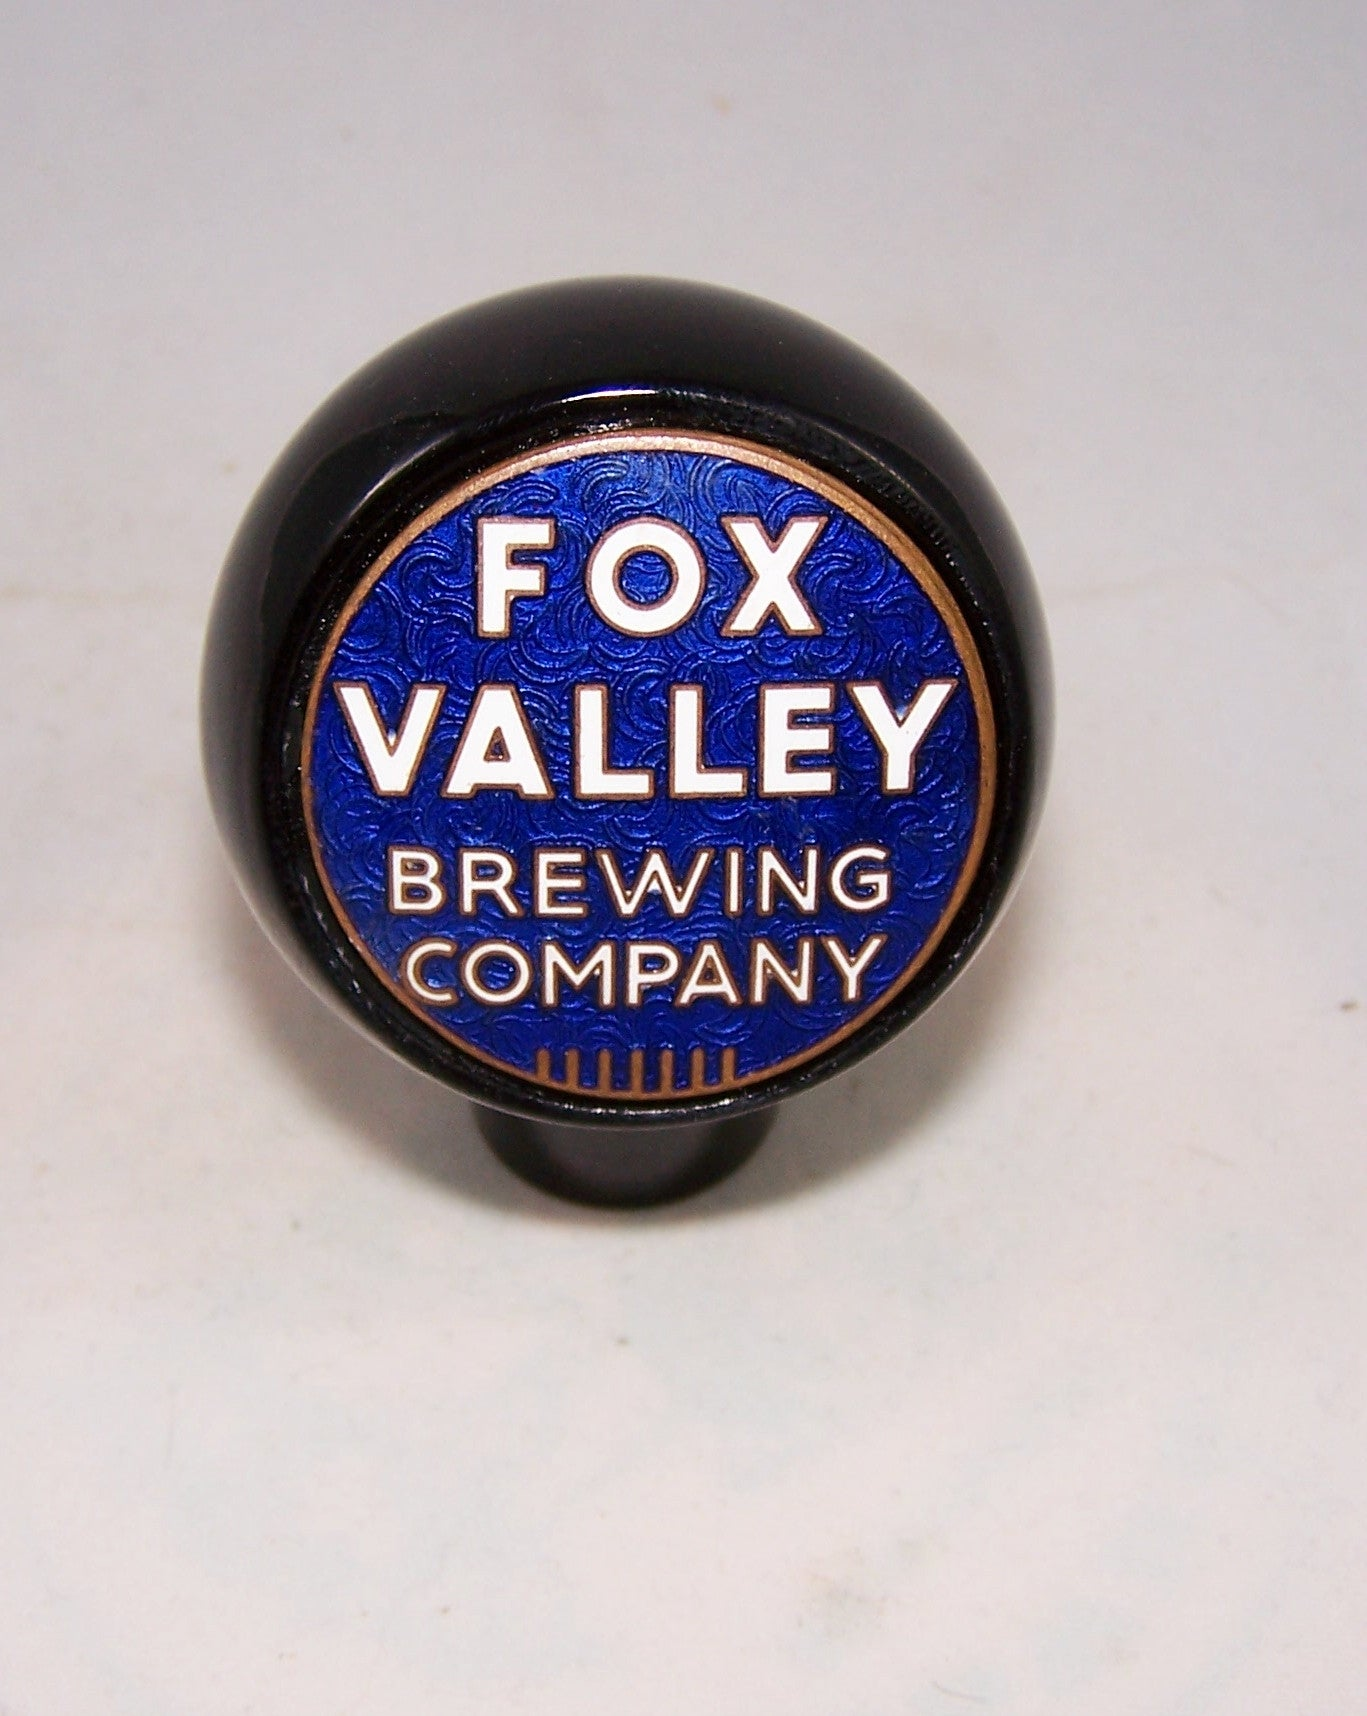 Fox Valley Brewing Company, Tap Markers page 163-1896, Grade 9+ Sold on 02/12/16